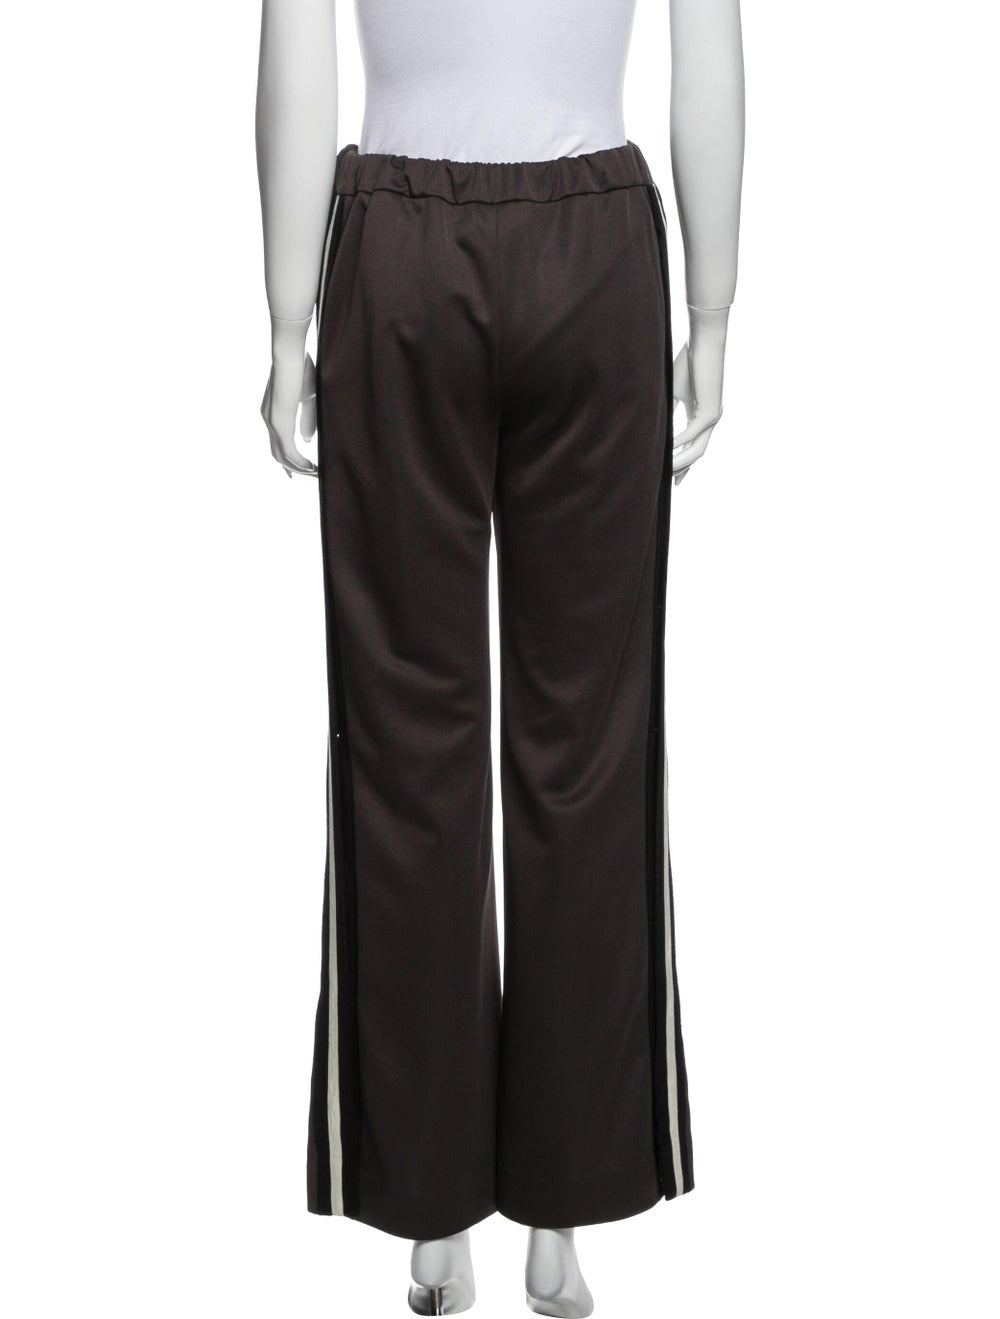 BY. Bonnie Young Wide Leg Pants Brown - image 3